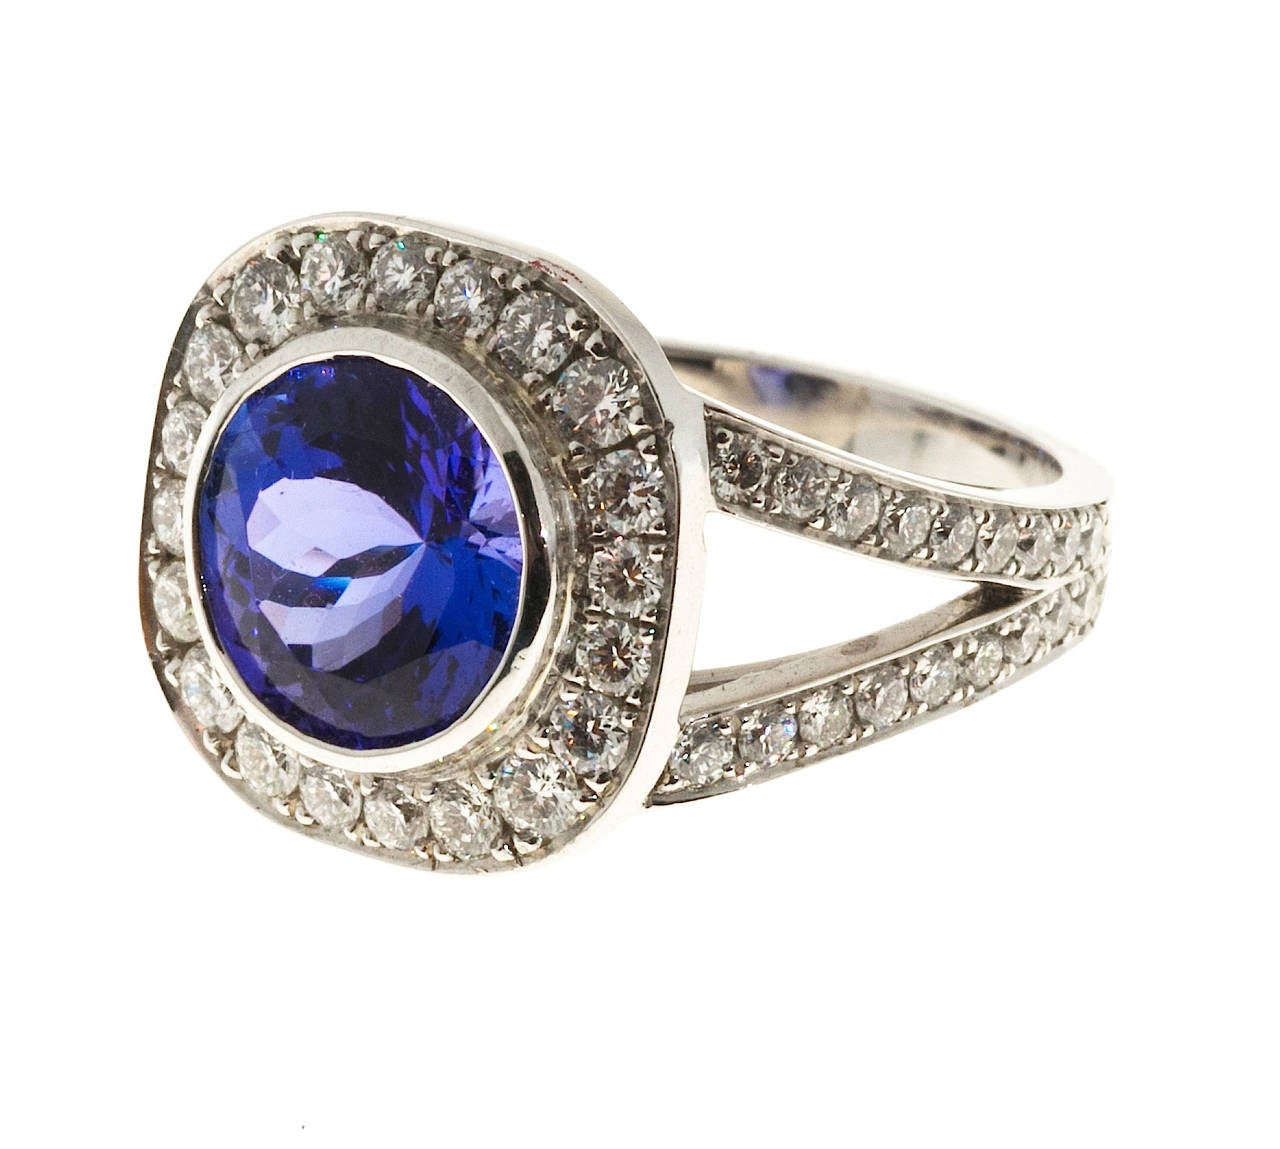 reinhardt engagement tanzanite gold jana london rings and white products jewellery collections ring copy bespoke